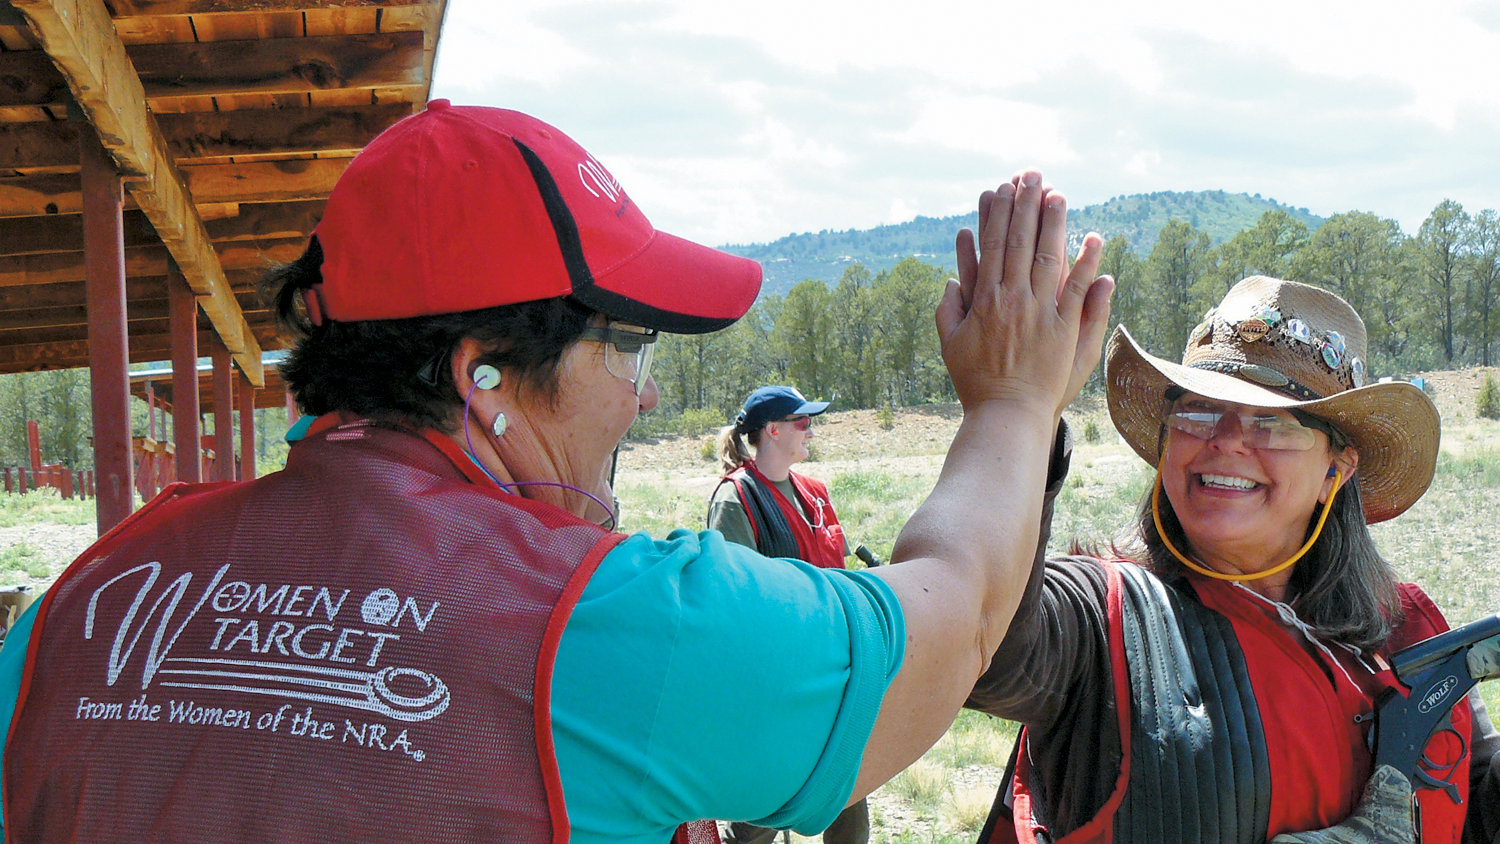 See How One Colorado Gun Range is Putting Women on Target